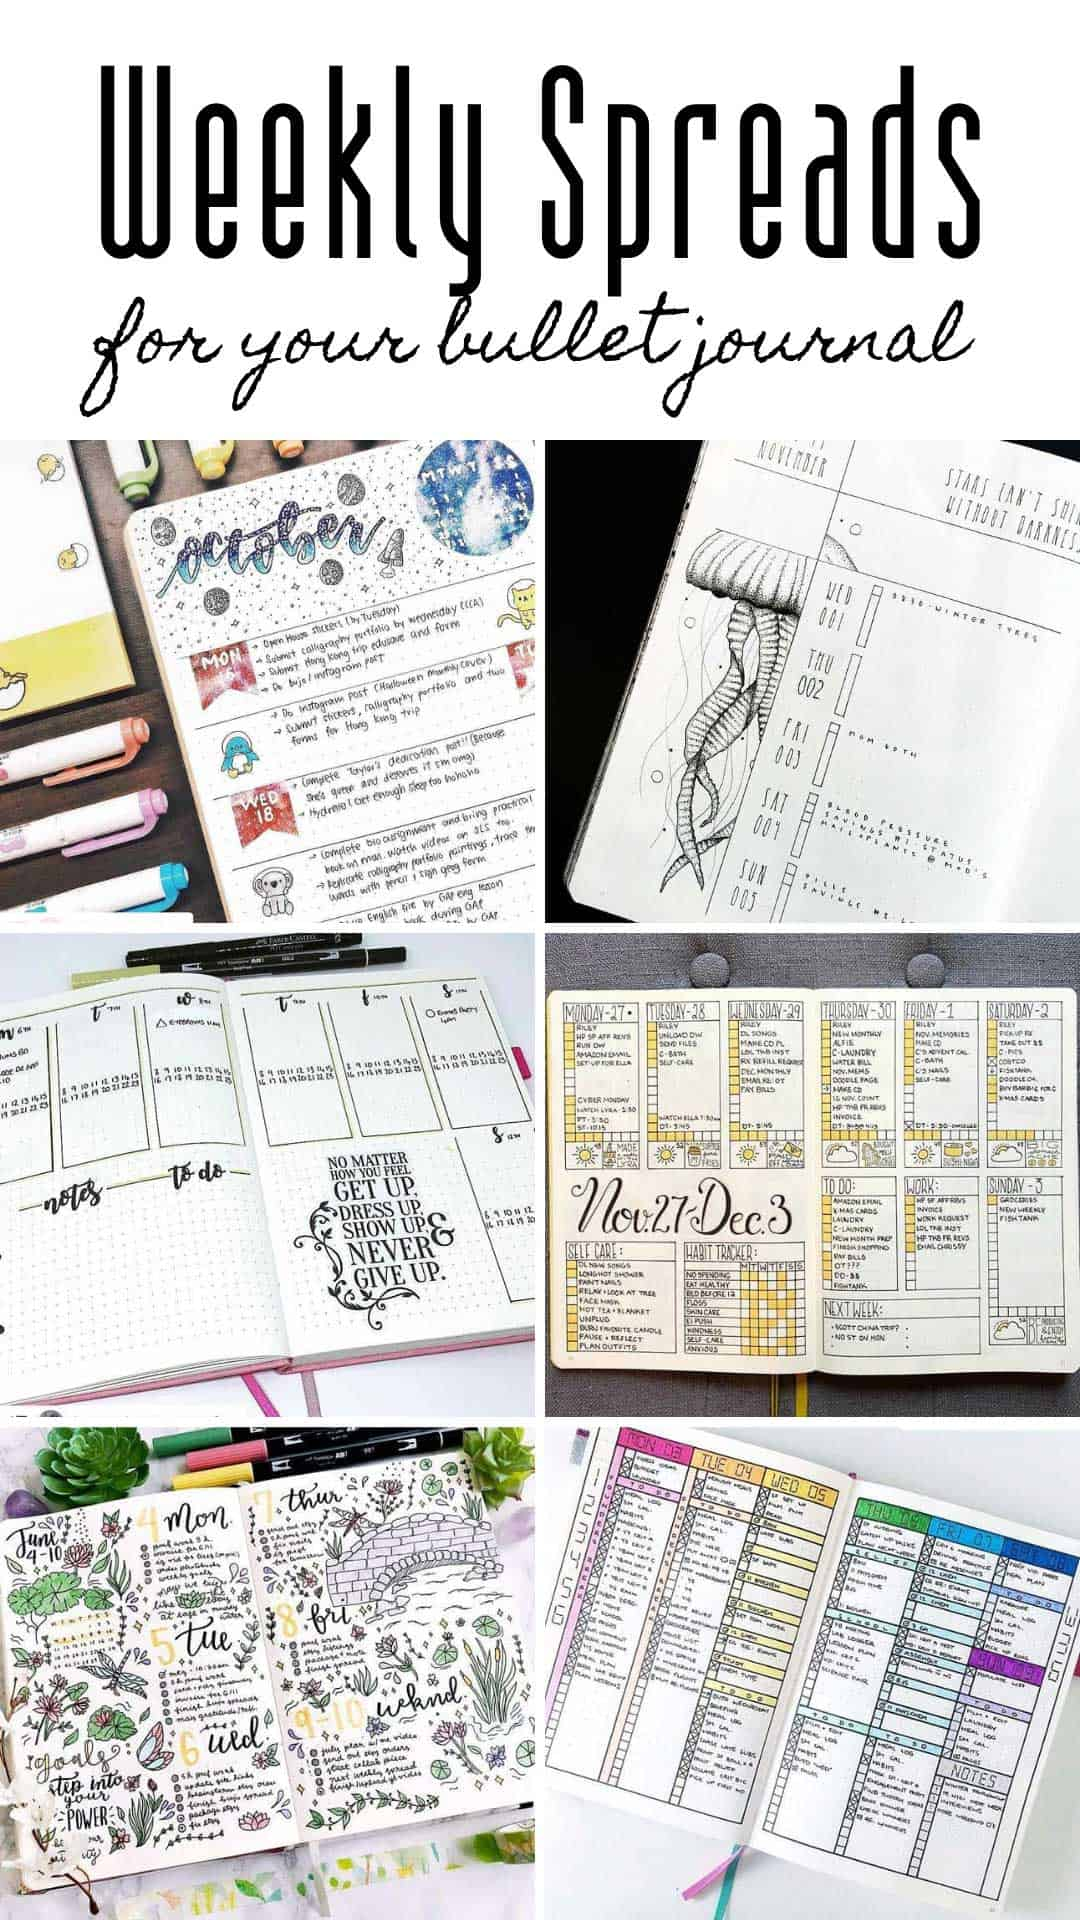 Bring your BUJO weekly spread to life with these creative ideas. Vertical and horizontal spread ideas for you to try #bulletjournal